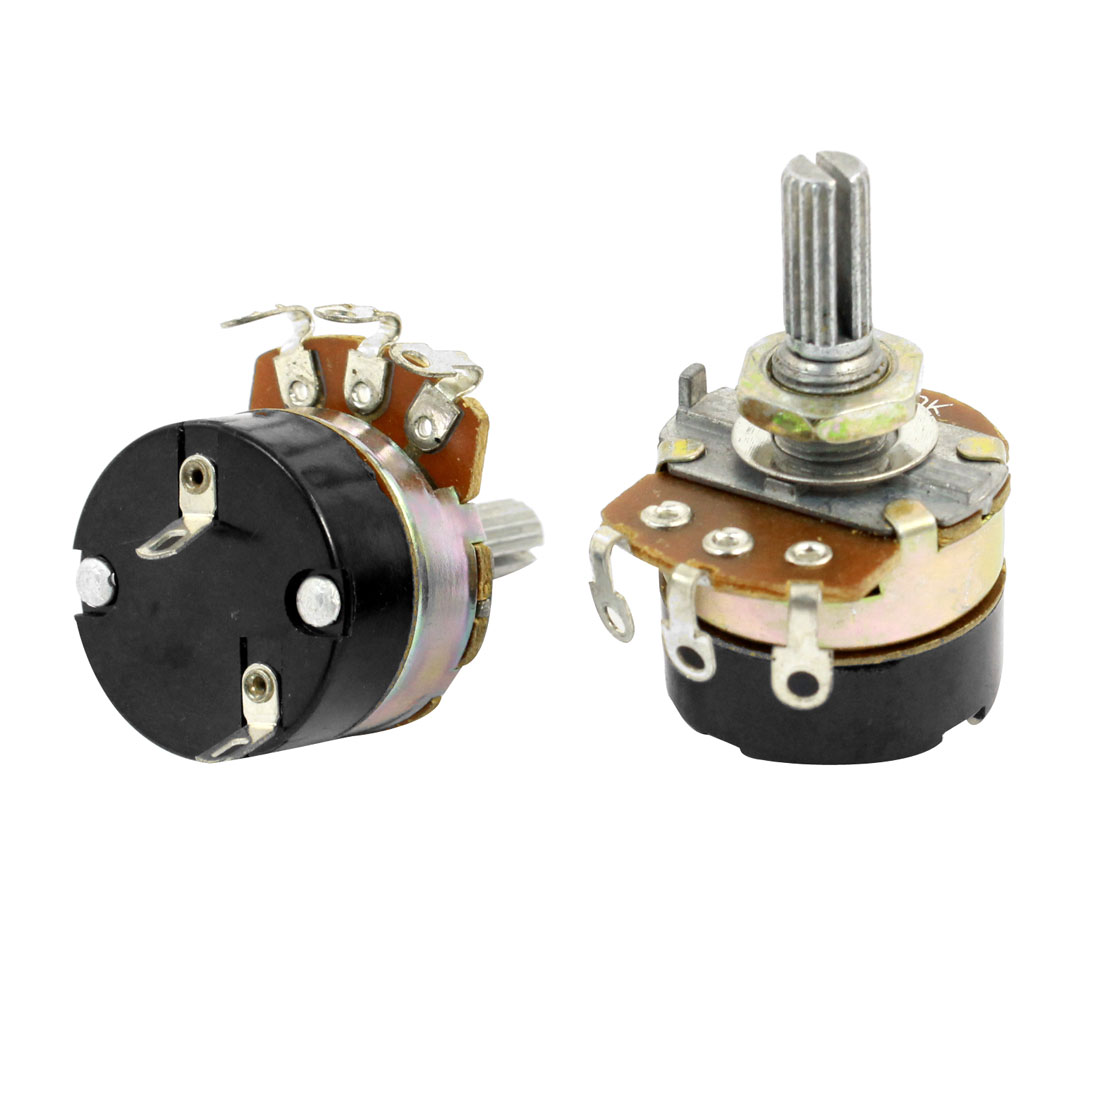 2Pcs B50K 50K Ohm 6mm Shaft Single Linear Rotary Switch Carbon Potentiometers